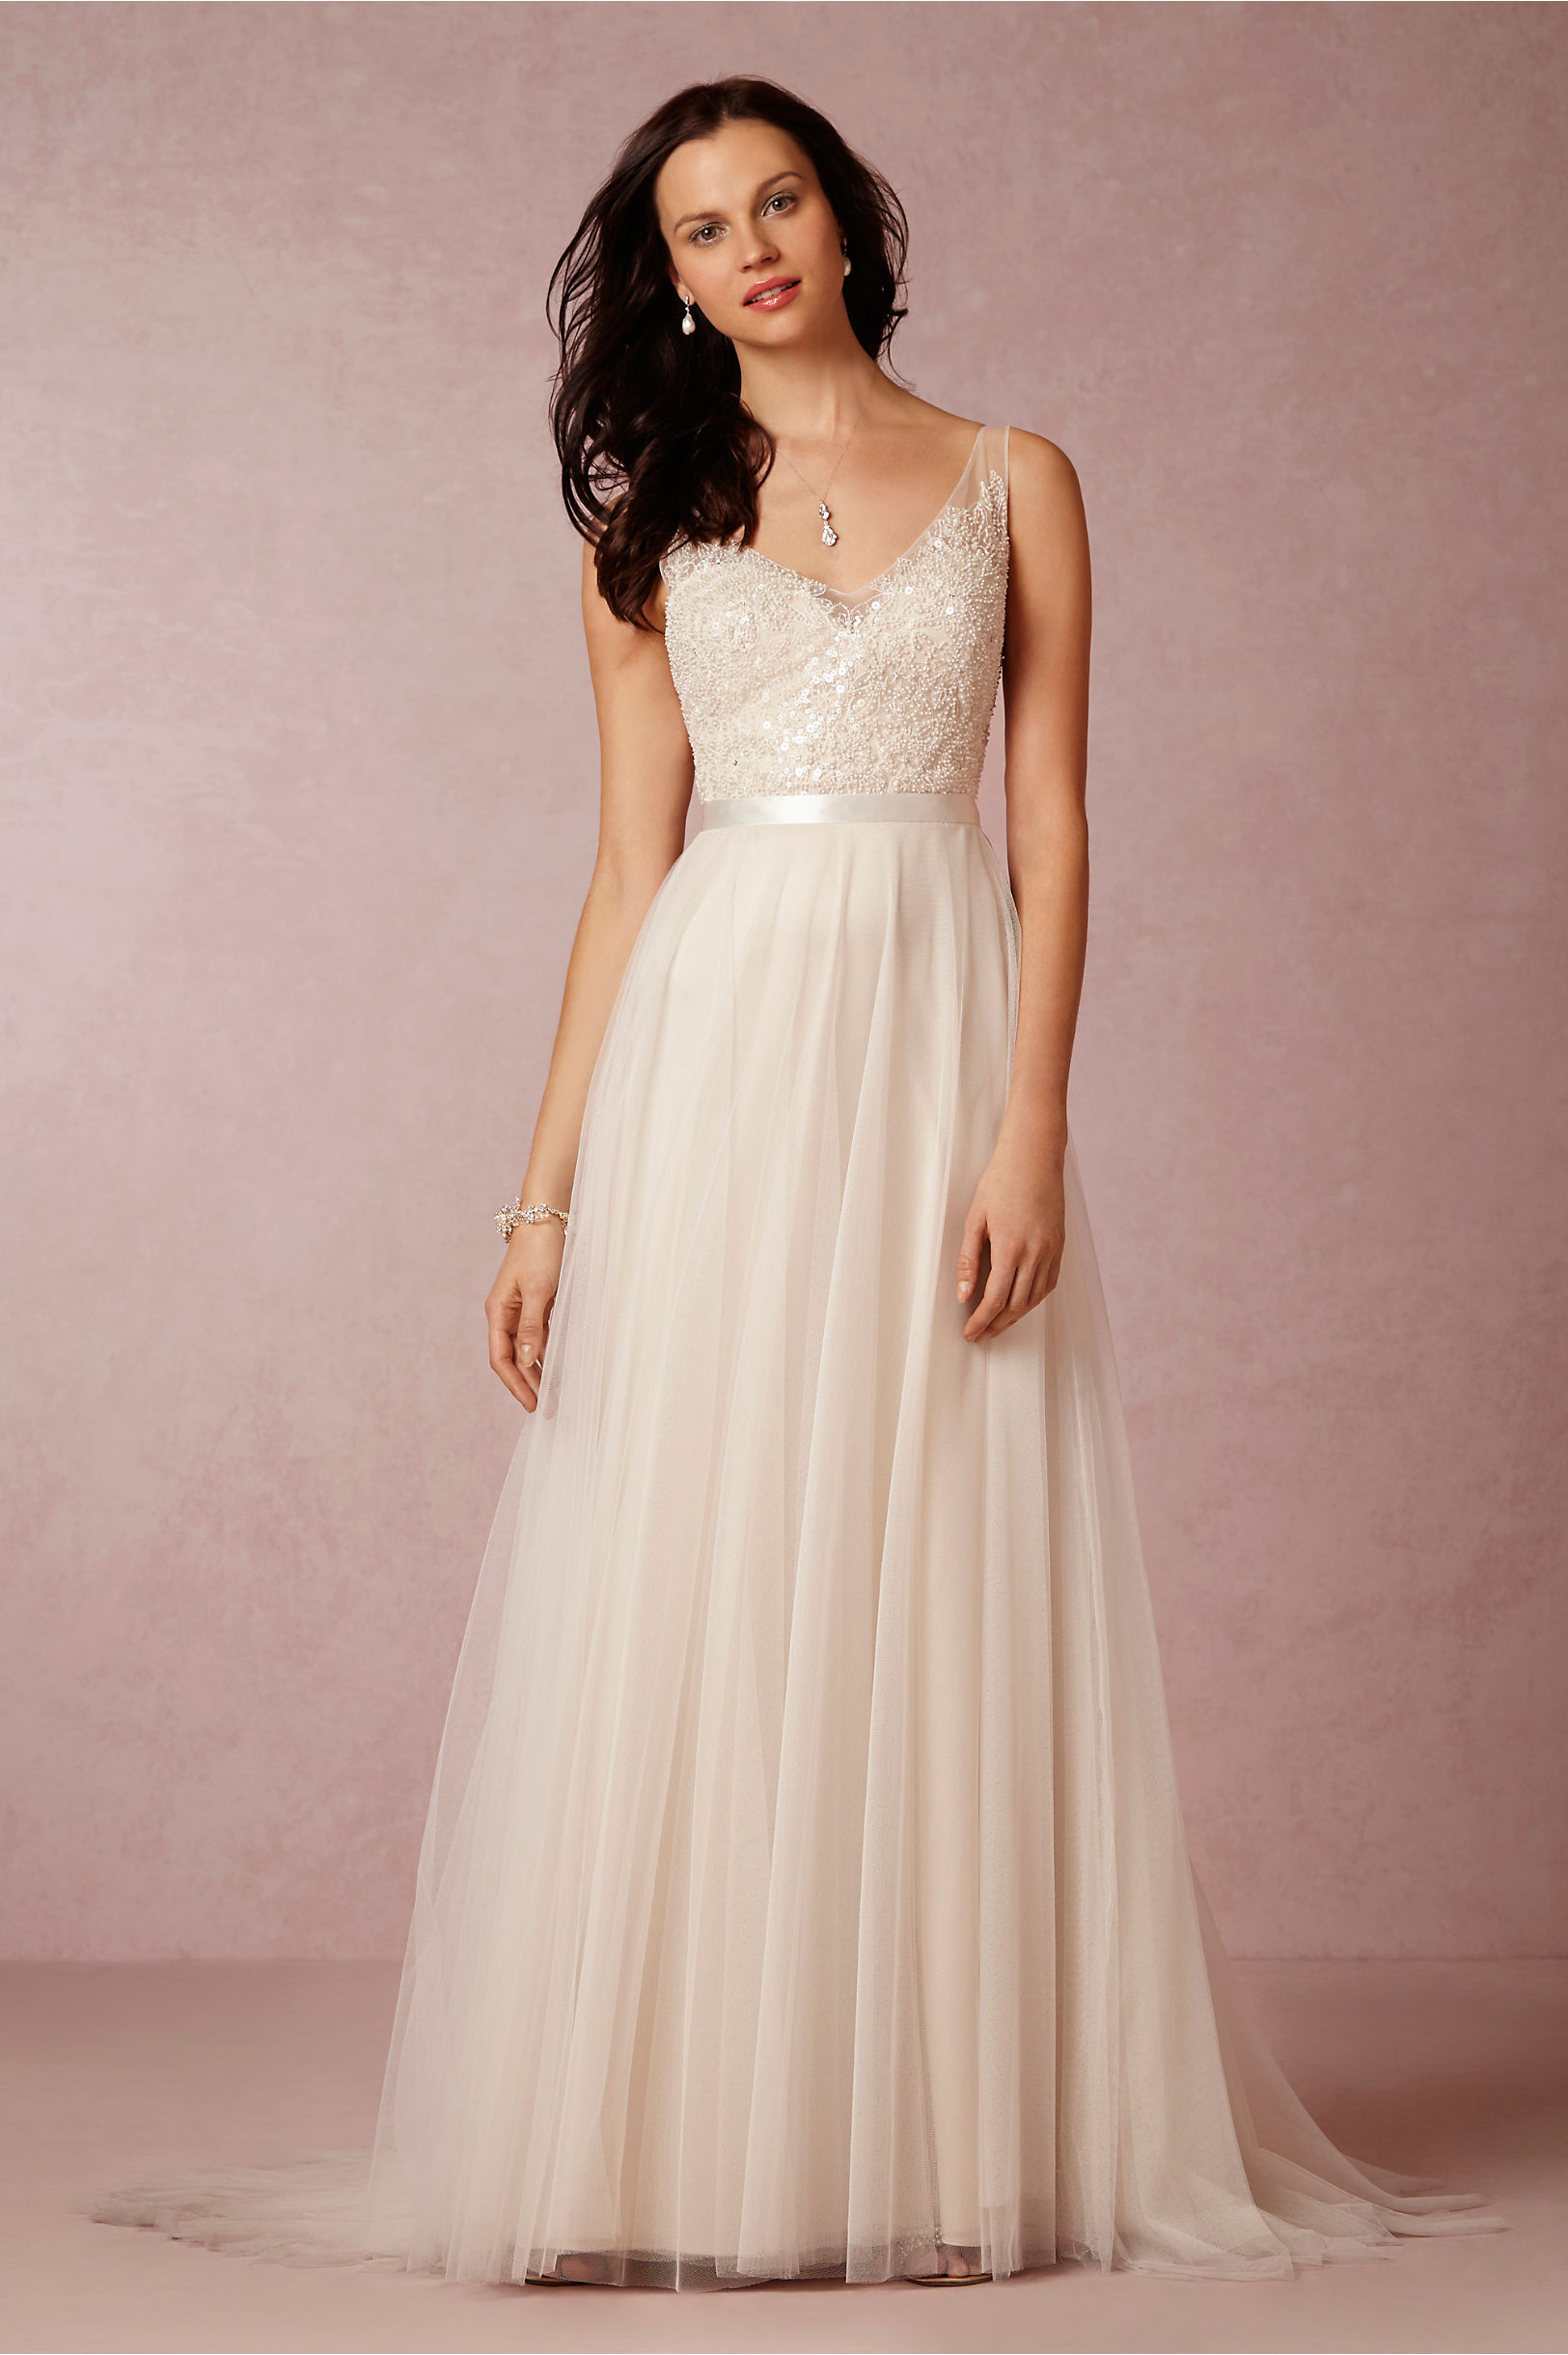 Persiphone Gown in Bride | BHLDN